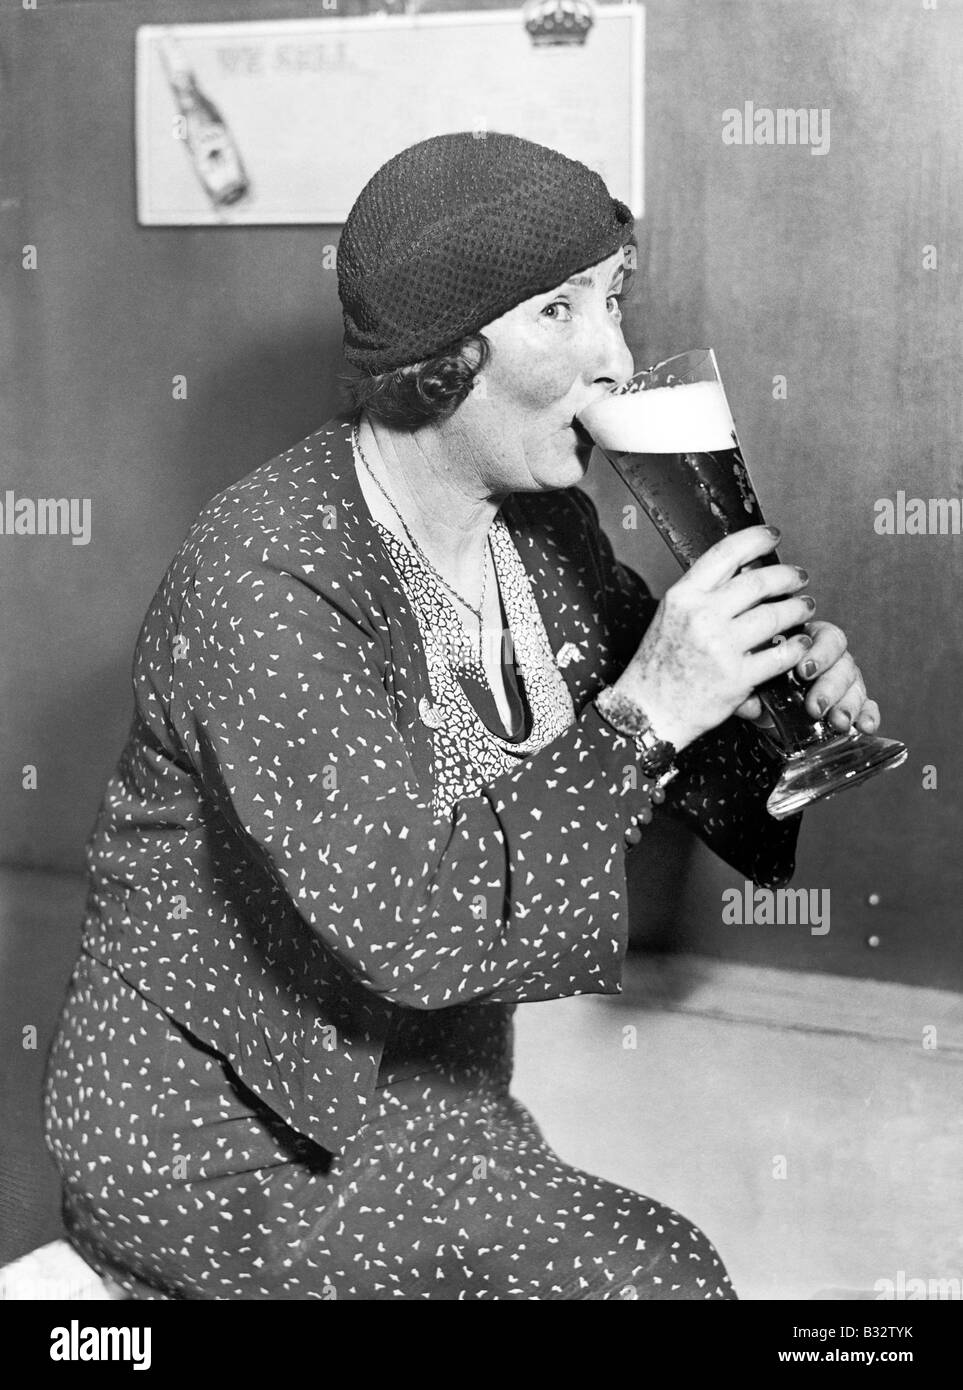 Woman drinking out of a big beer glass - Stock Image